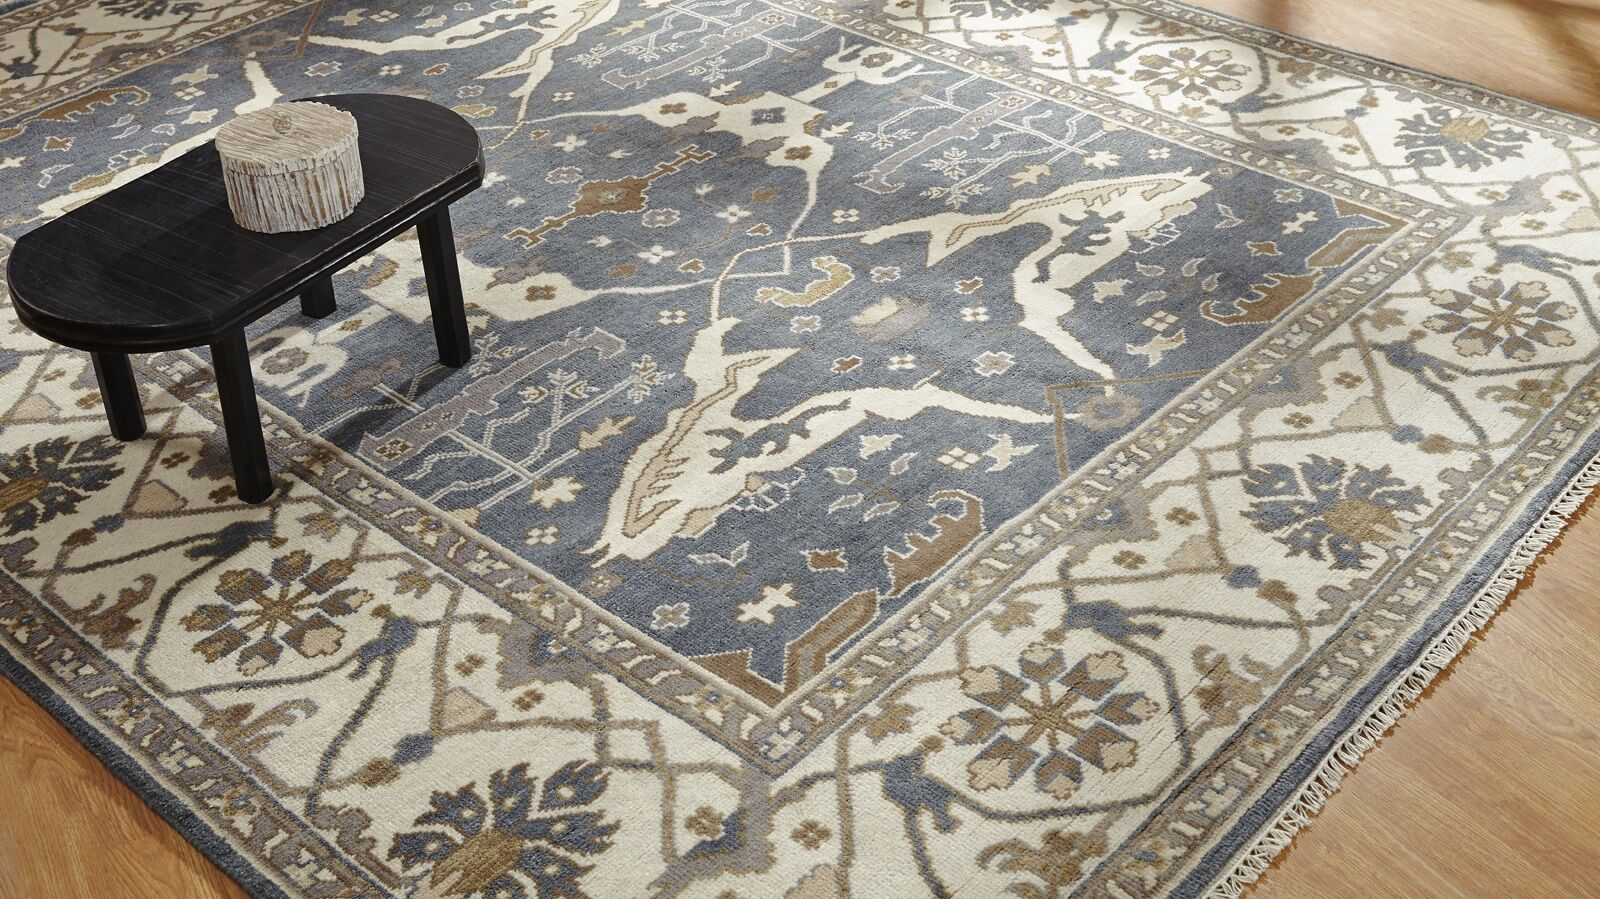 Mitul Hand Knotted Wool Blue/Ivory Area Rug Rug Size: Rectangle 10' x 14'